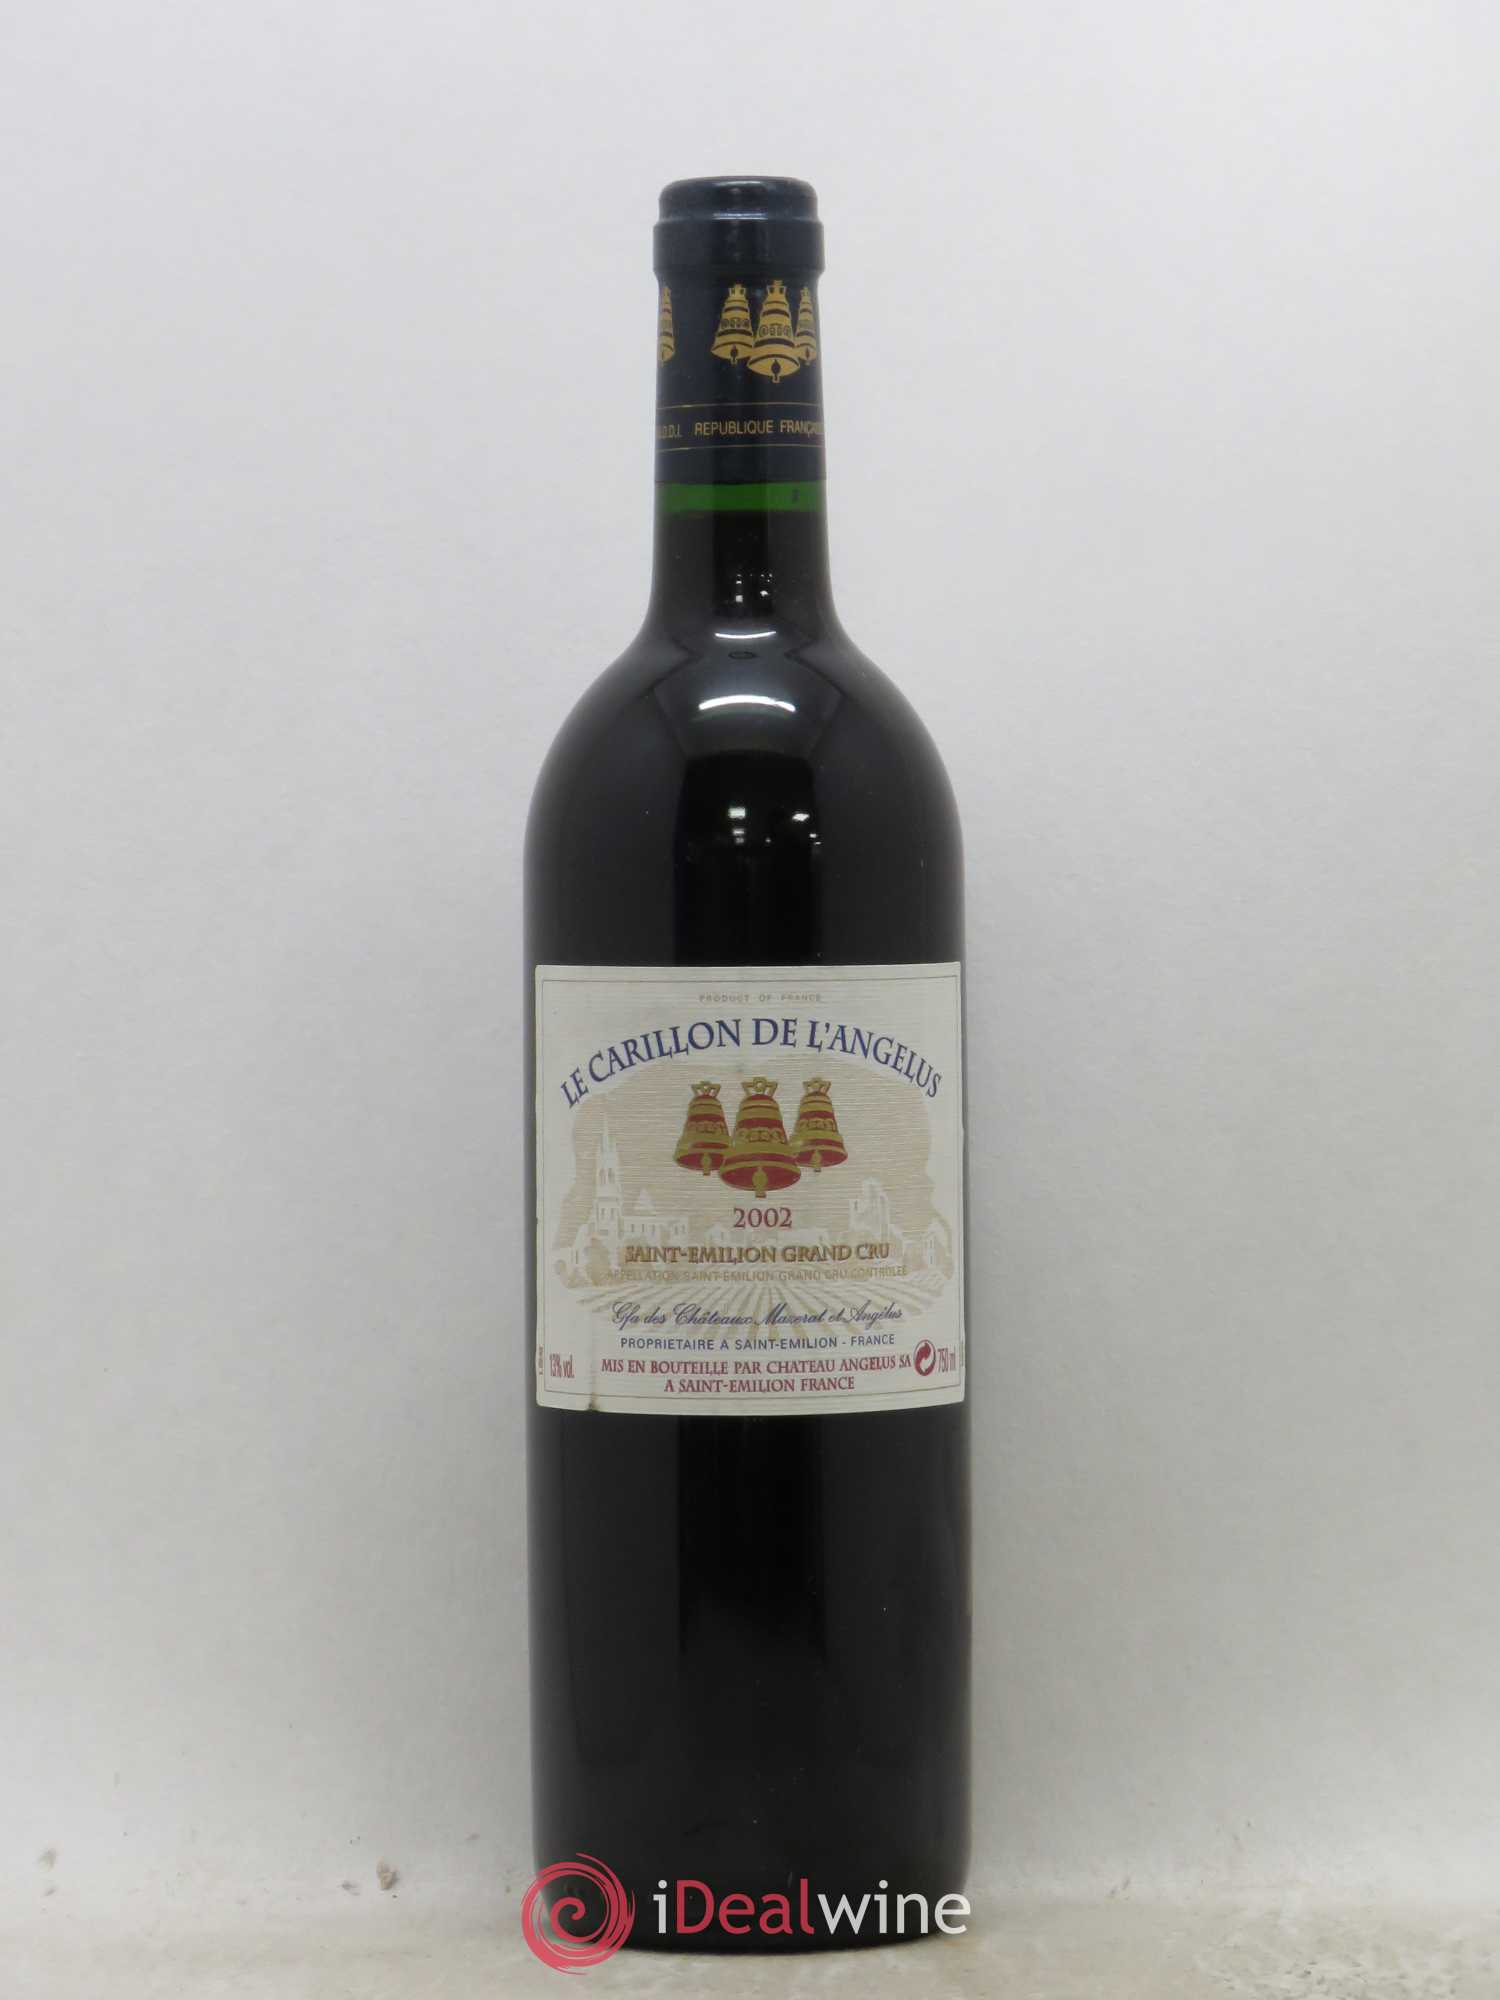 Le Carillon de l'Angélus Second vin  2002 - Lot of 1 Bottle